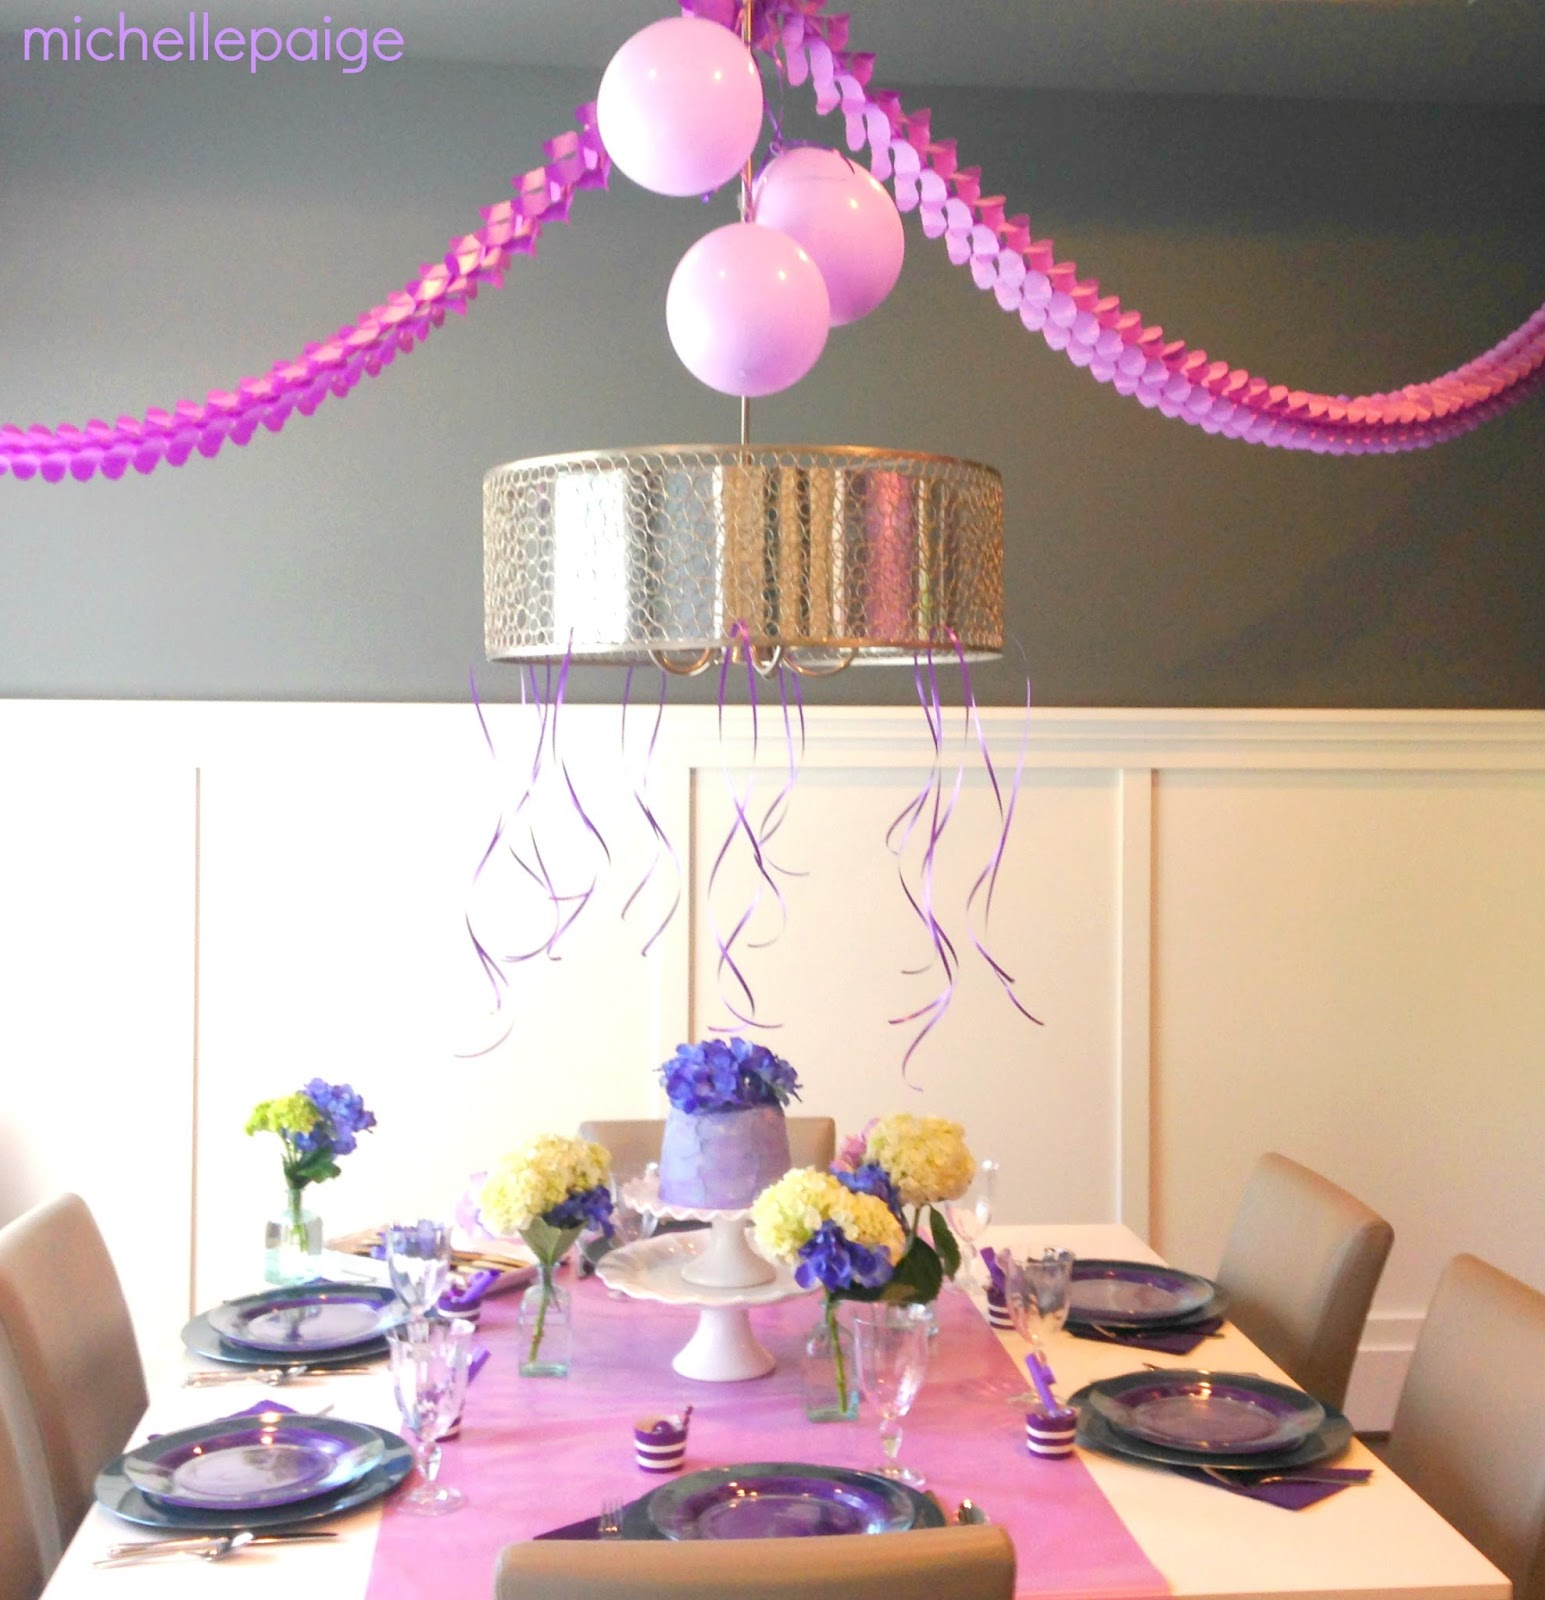 Michelle paige blogs purple hydrangea birthday lavender wrapping paper lined the table purple balloons curling ribbon and serpentine party dcor helped decorate our dining room izmirmasajfo